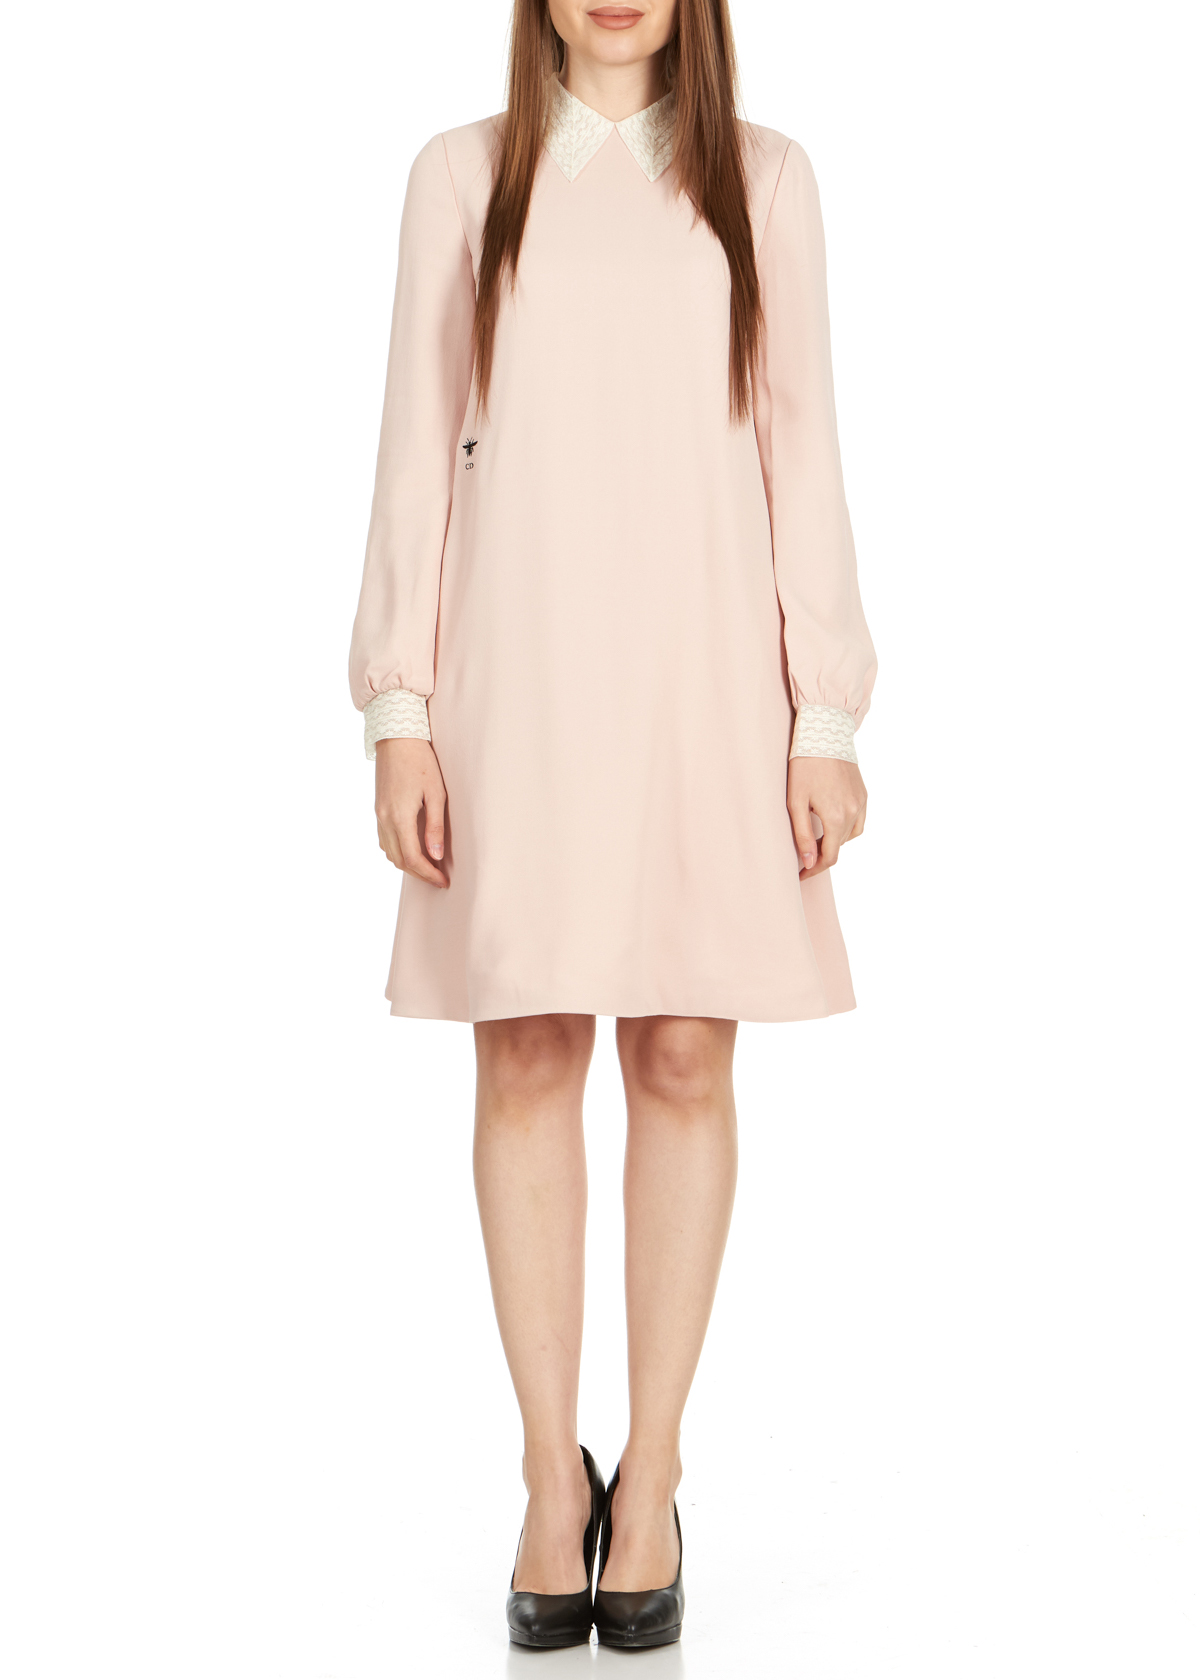 Details About Dior Womens Pink Lace Collar Long Sleeve Dress Size Fr40us8rtl4240